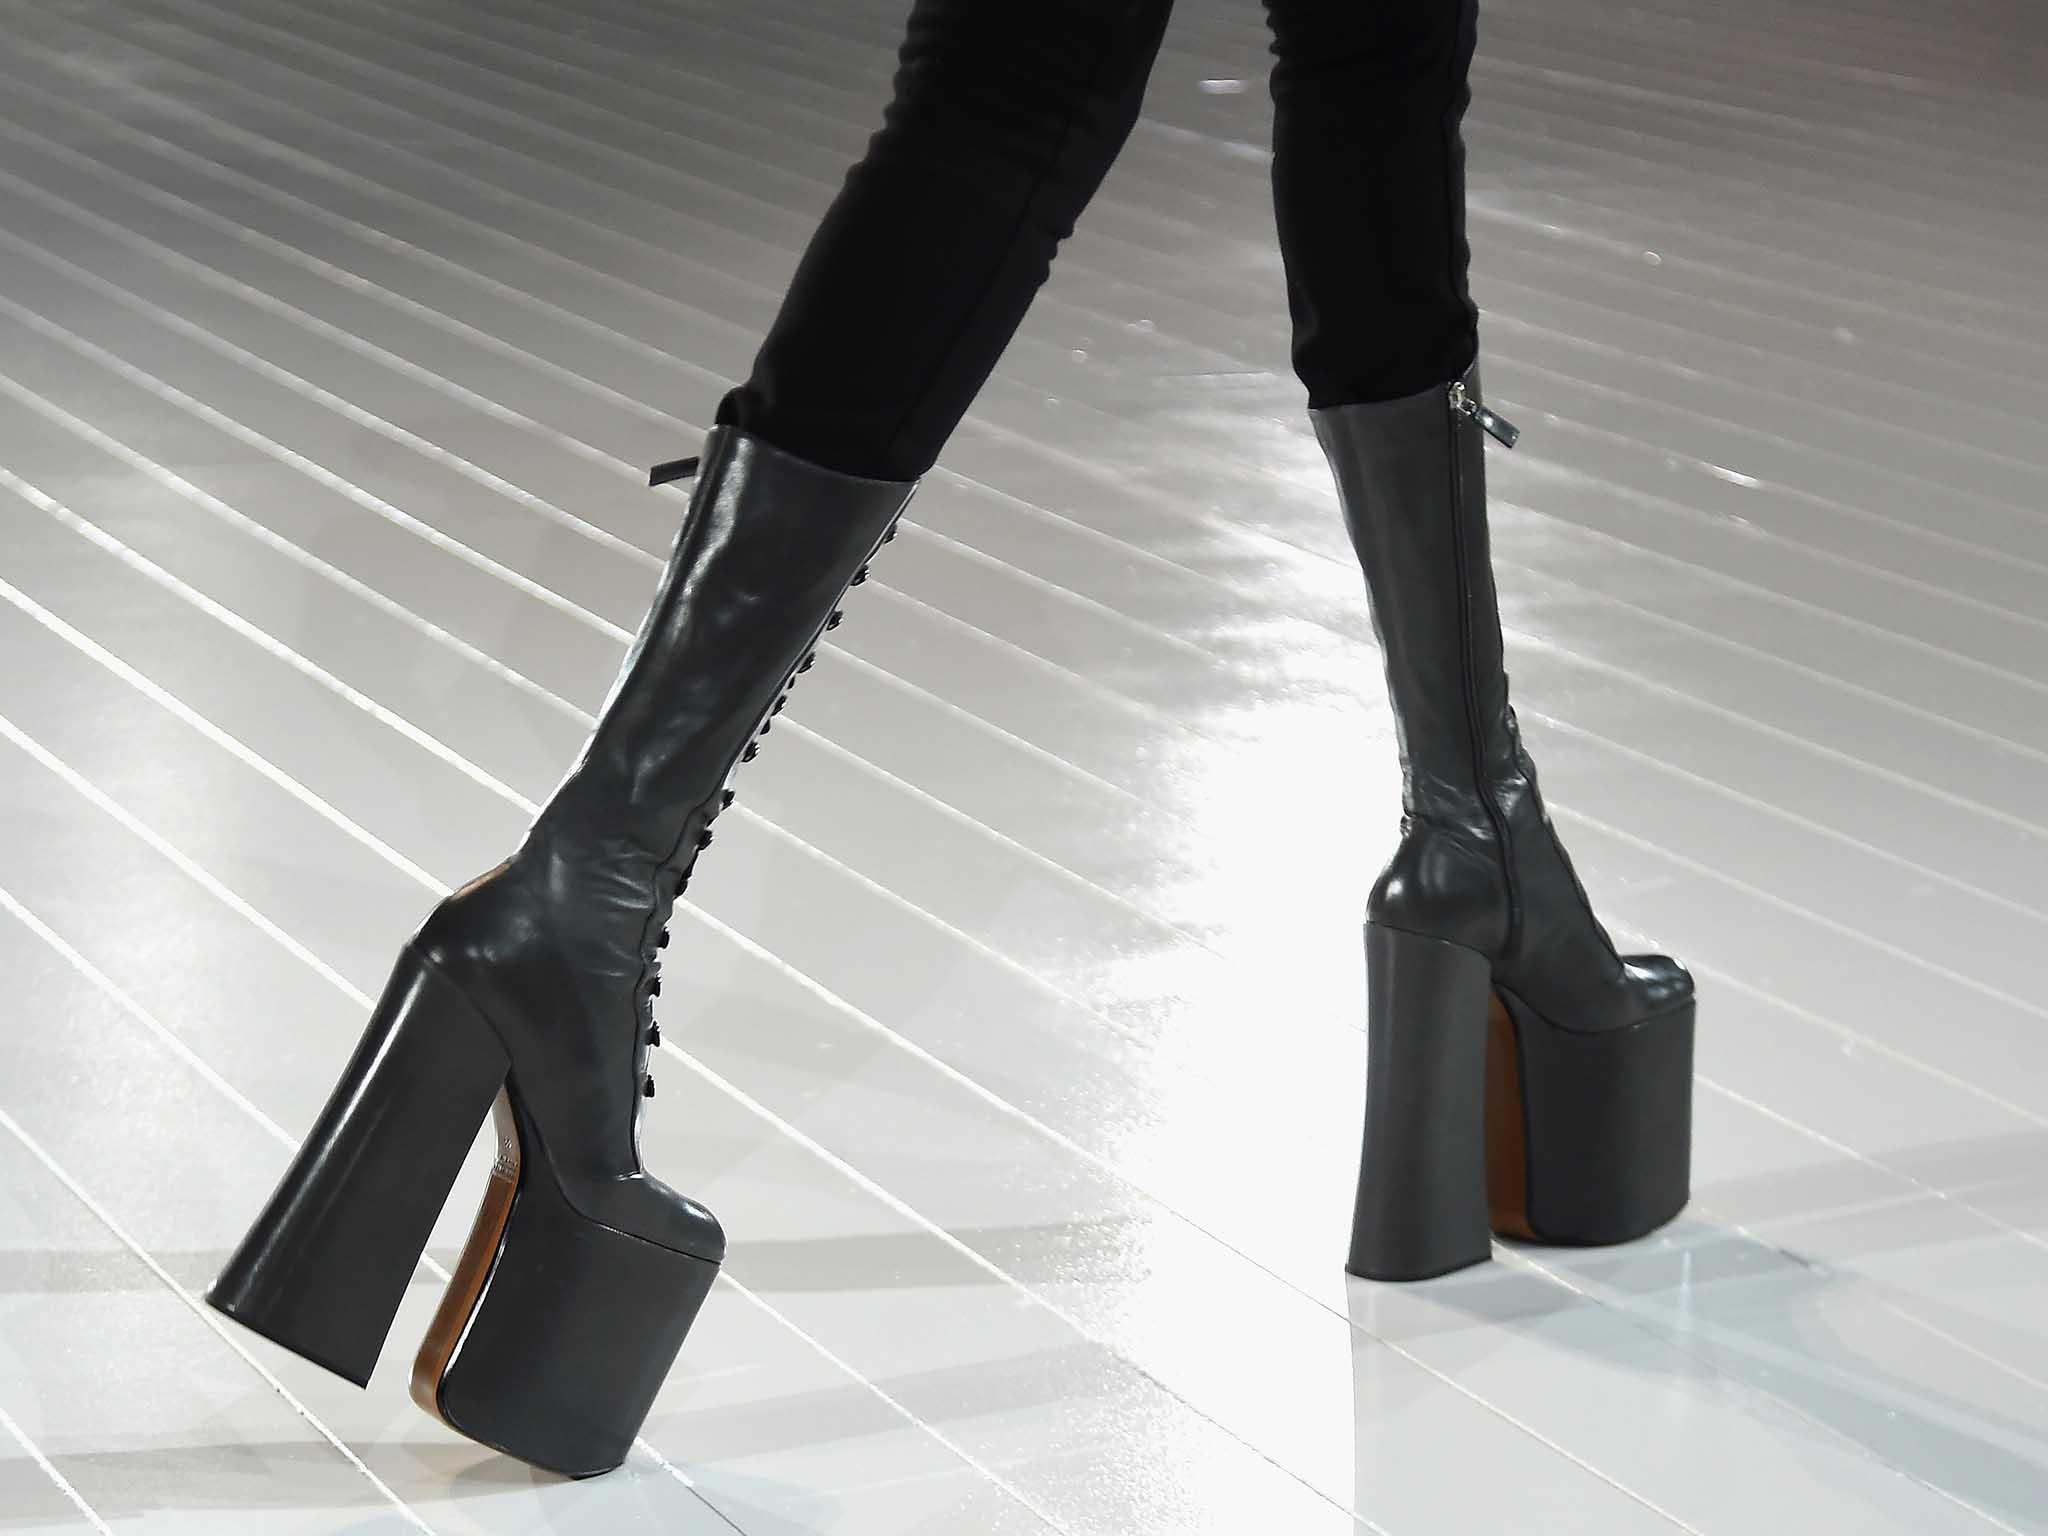 d4f409e45e6 Great heights: The rise of Bowie inspired glam-rock boots | The ...